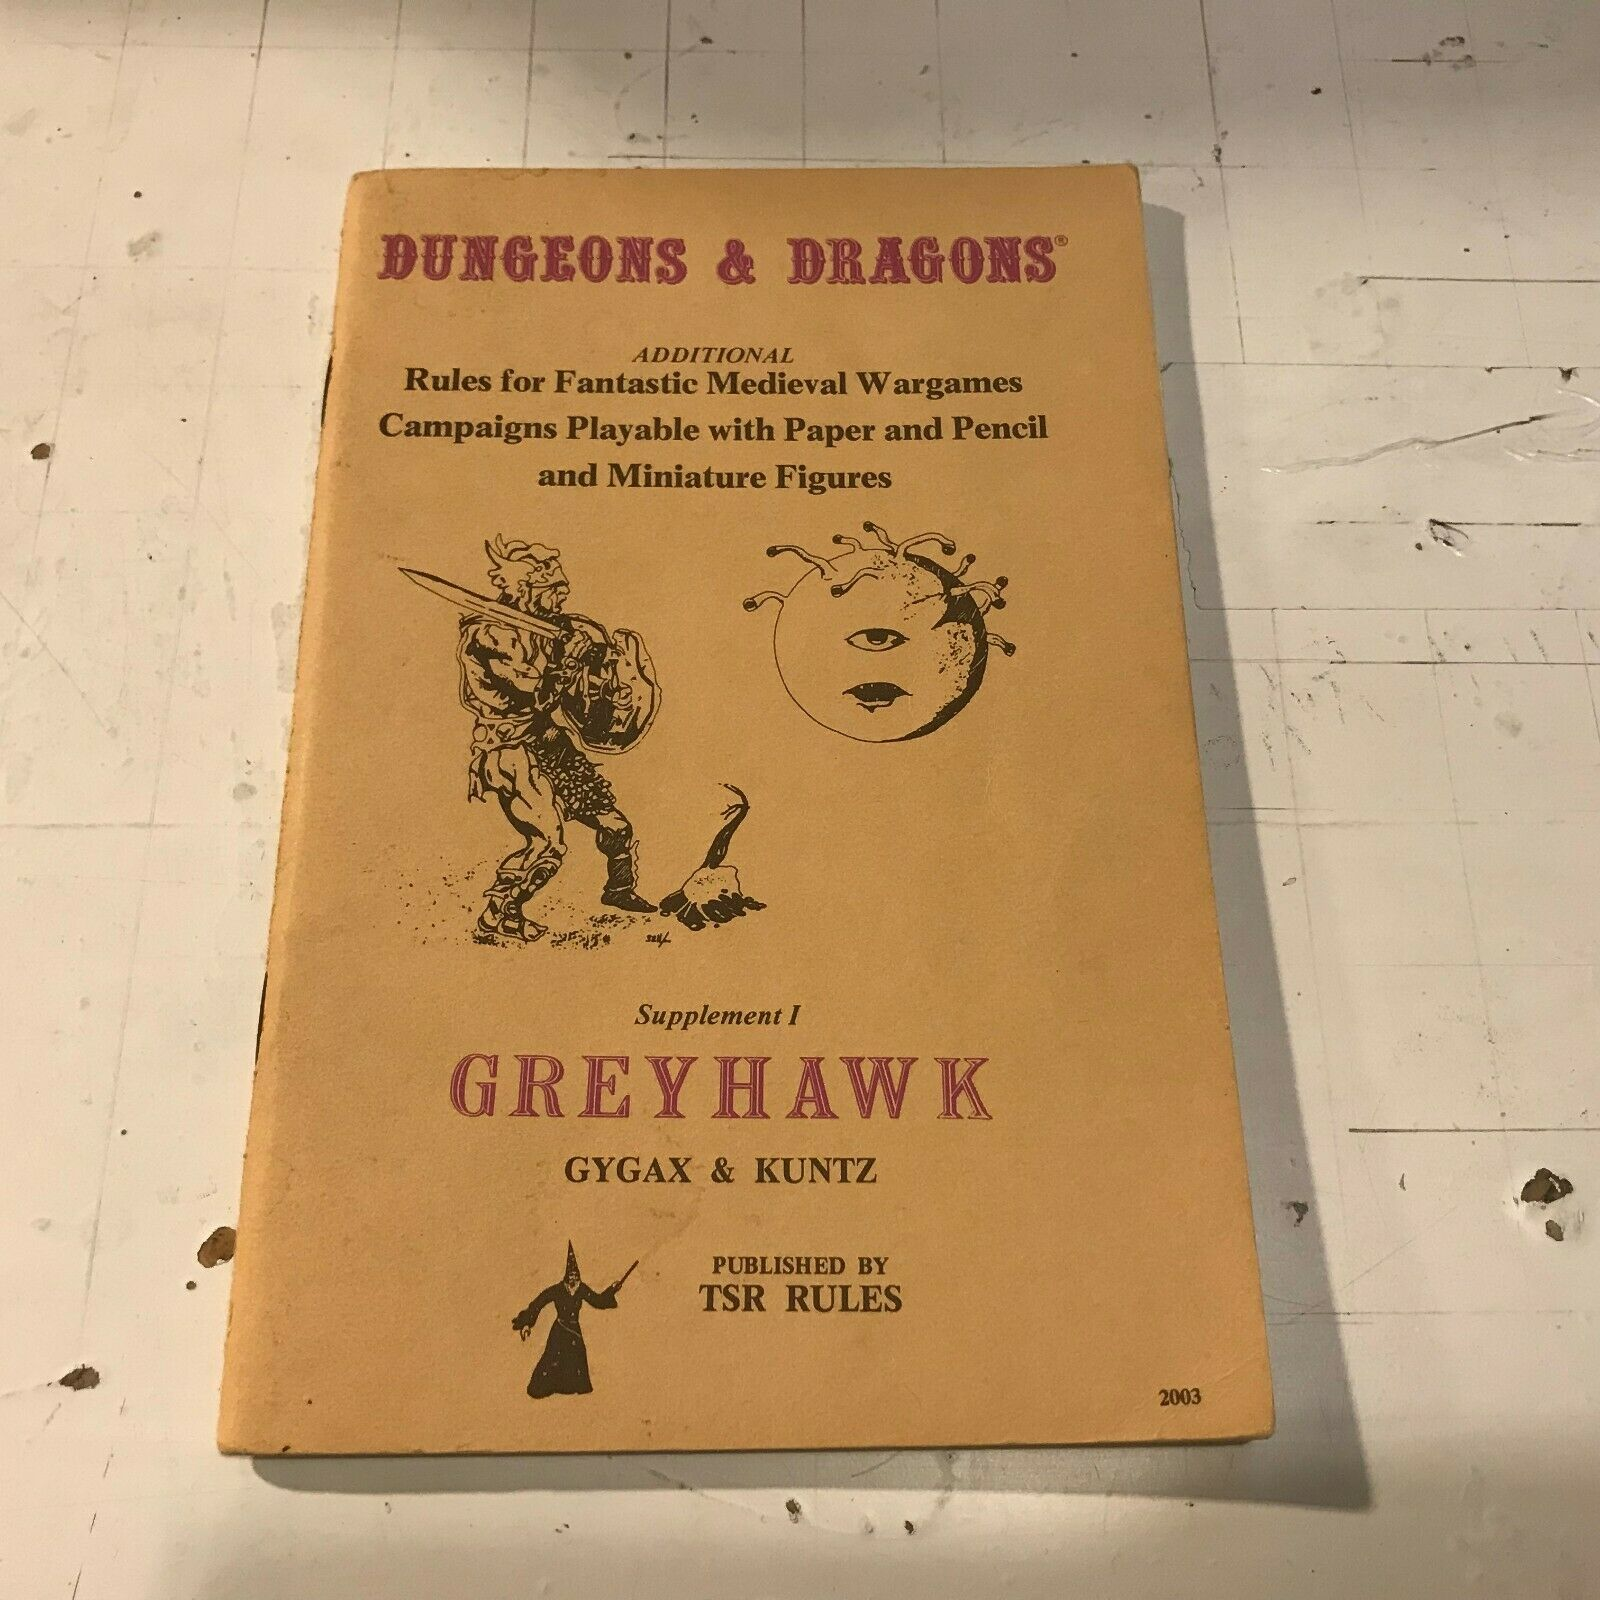 Dungeons and Dragons Supplement 1 I Greyhawk 12th p d&d 1979 Gary Gygax Kuntz pb